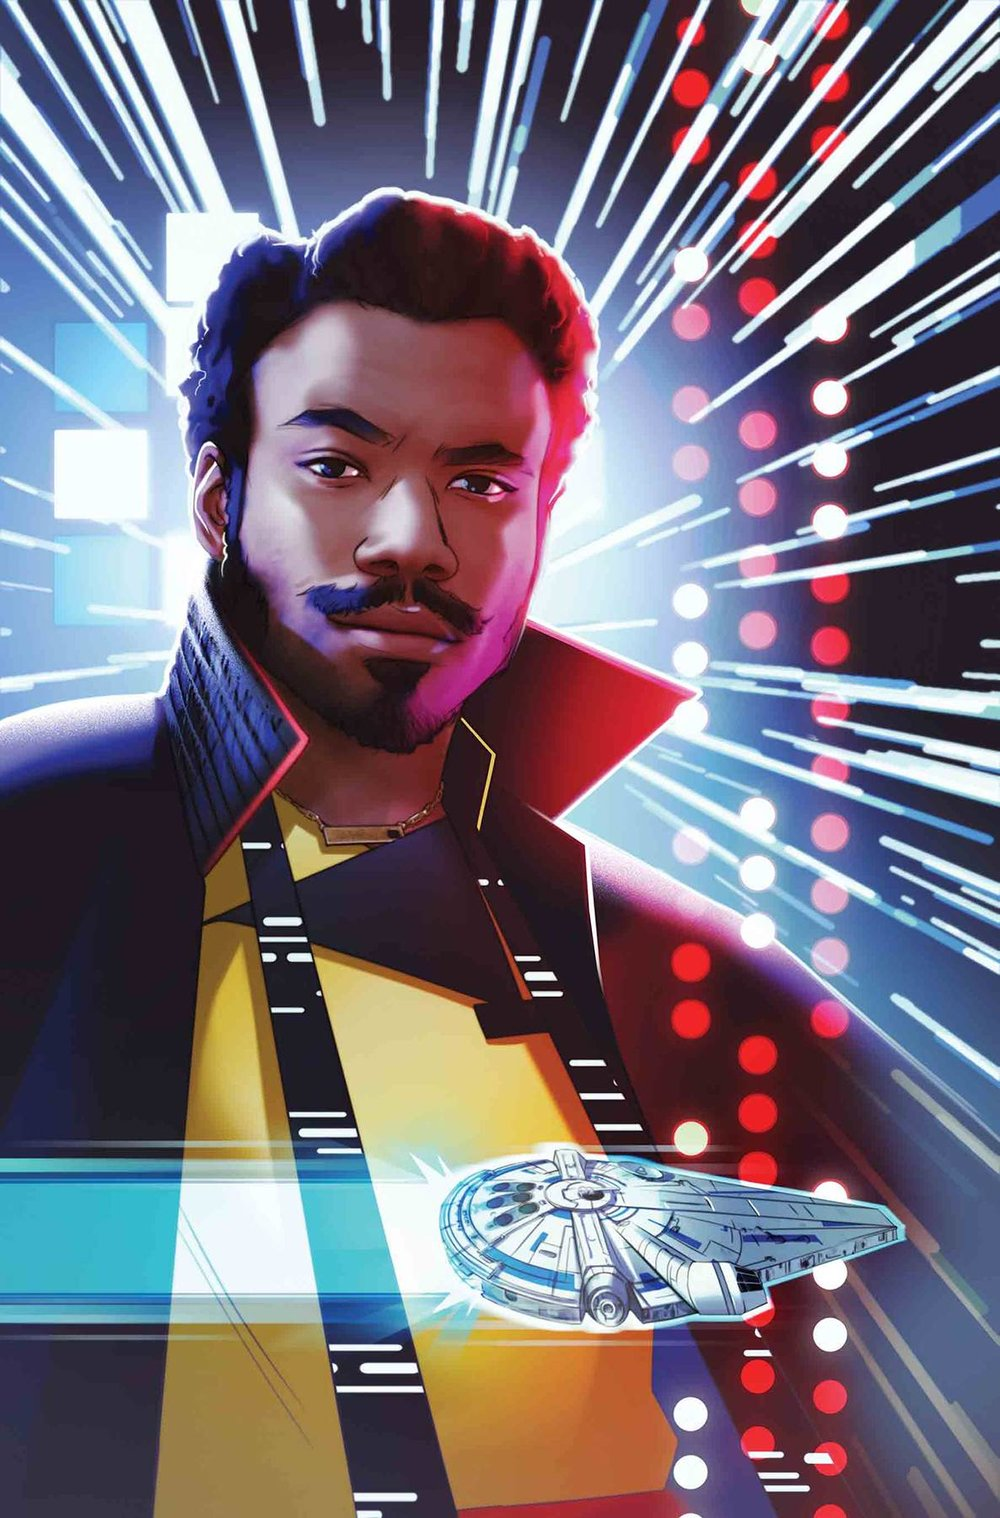 STAR WARS LANDO DOUBLE OR NOTHING 1 of 5.jpg